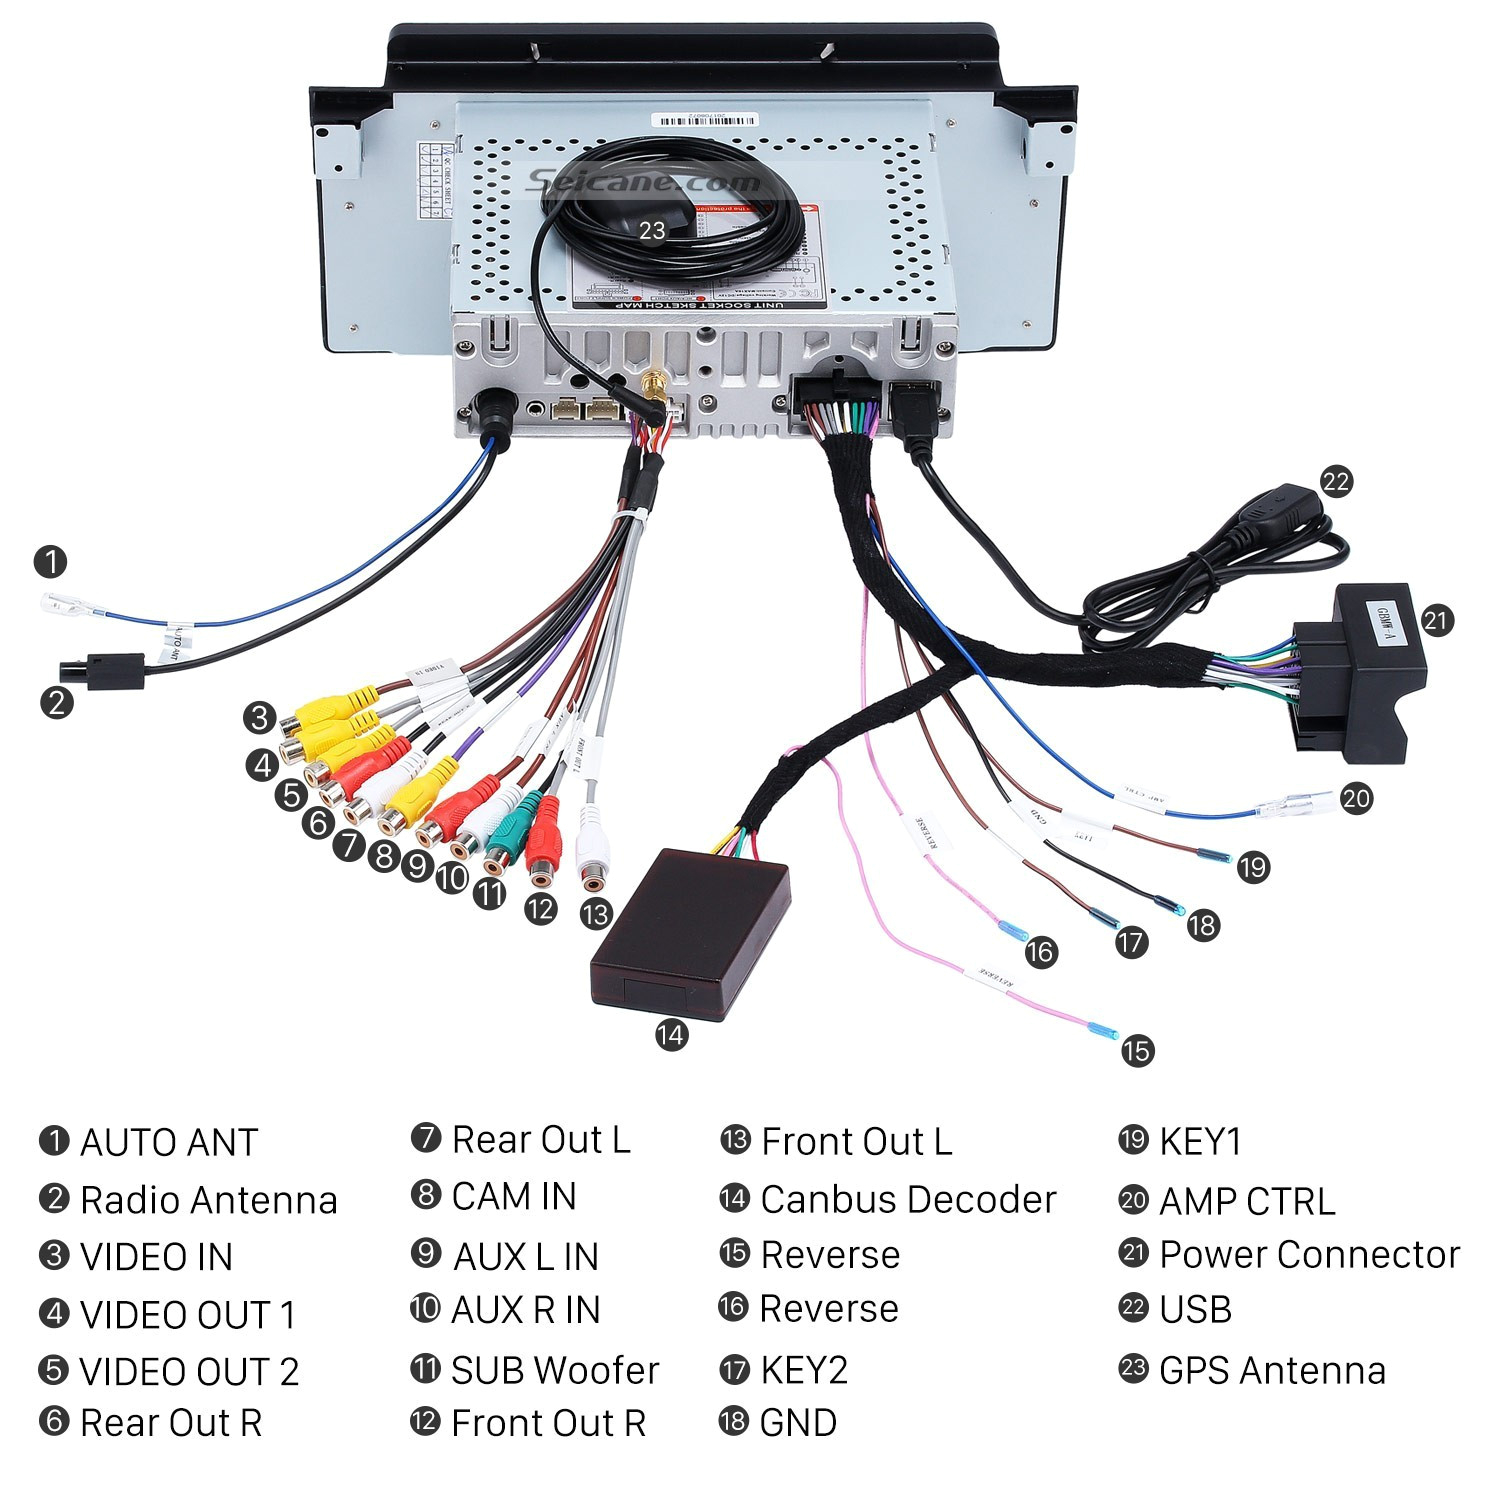 car audio wiring diagram new wiring diagram for cars inspirational car radio wiring diagram collection of